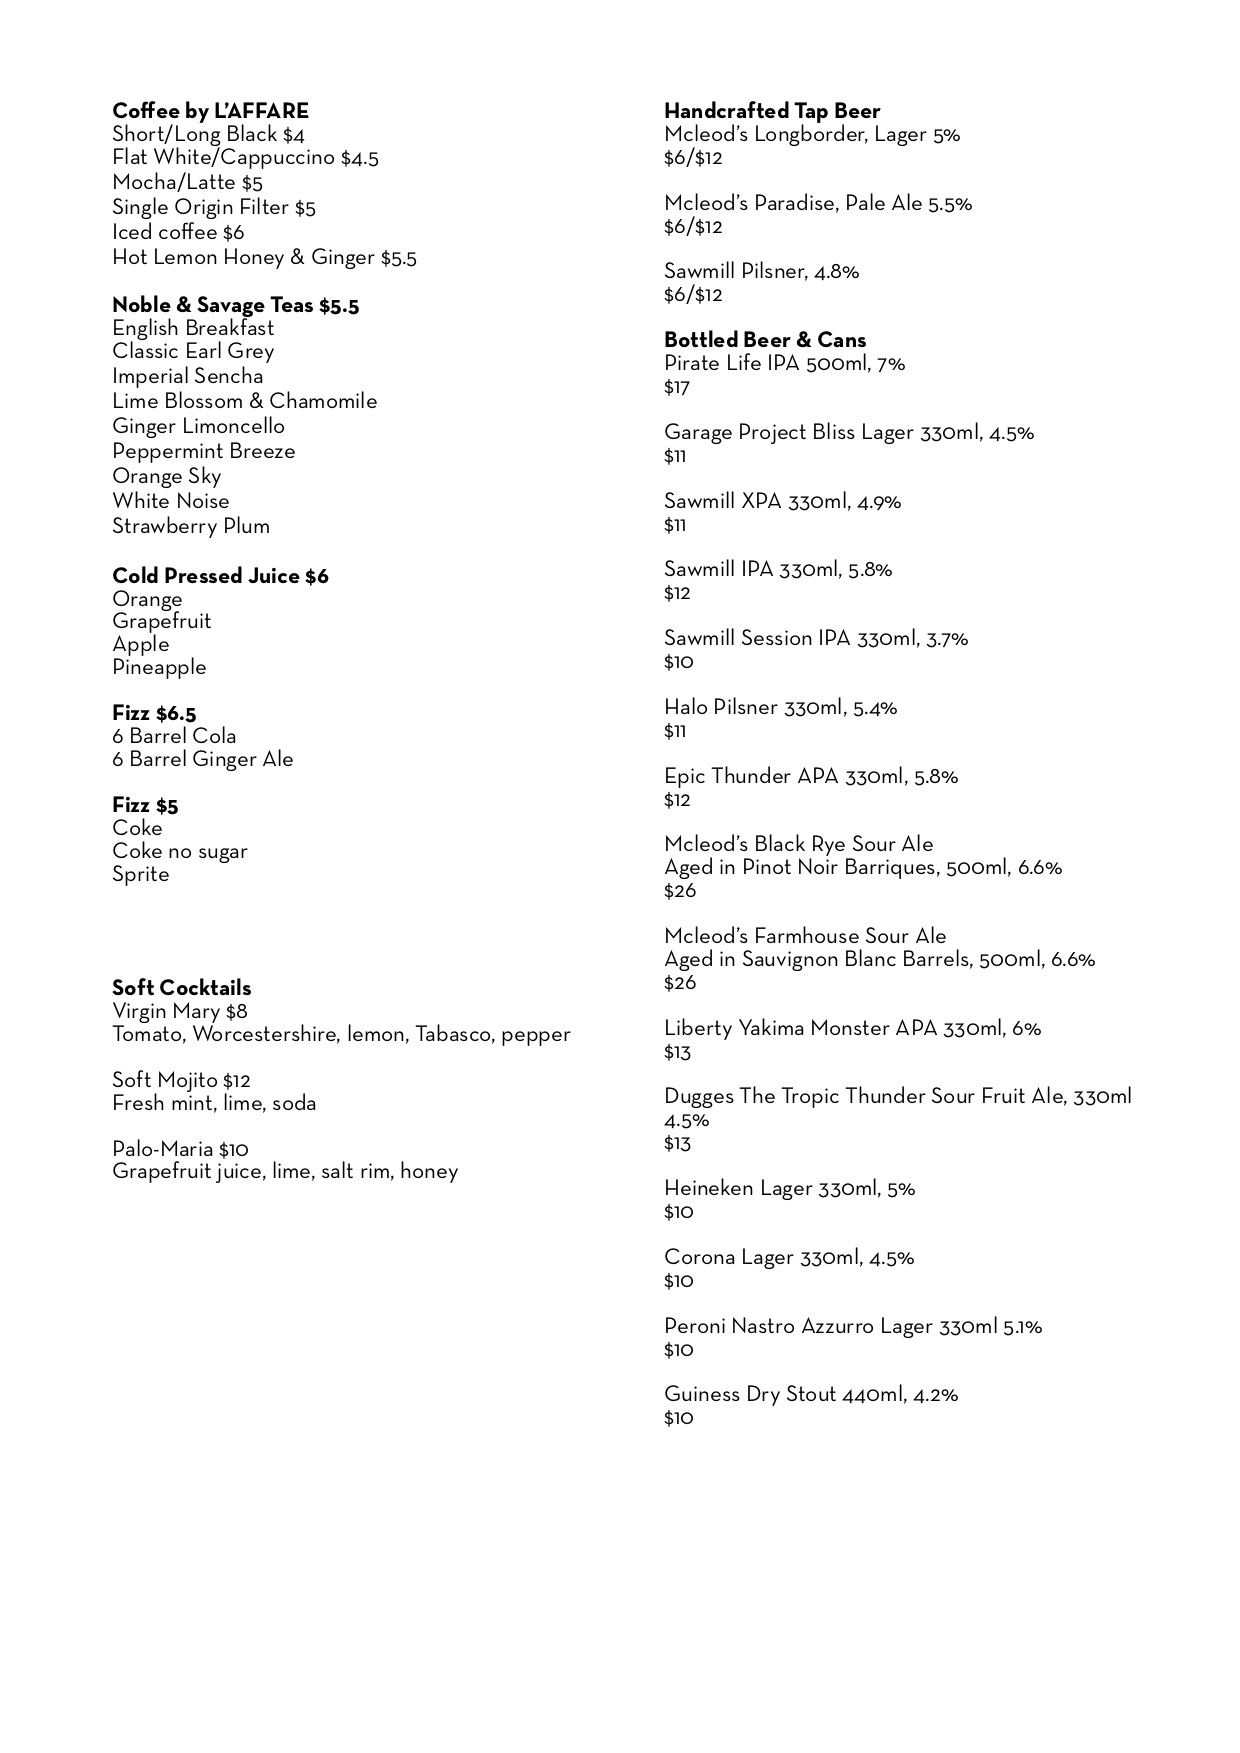 THE new Winelist- Drinks only page 1.jpg